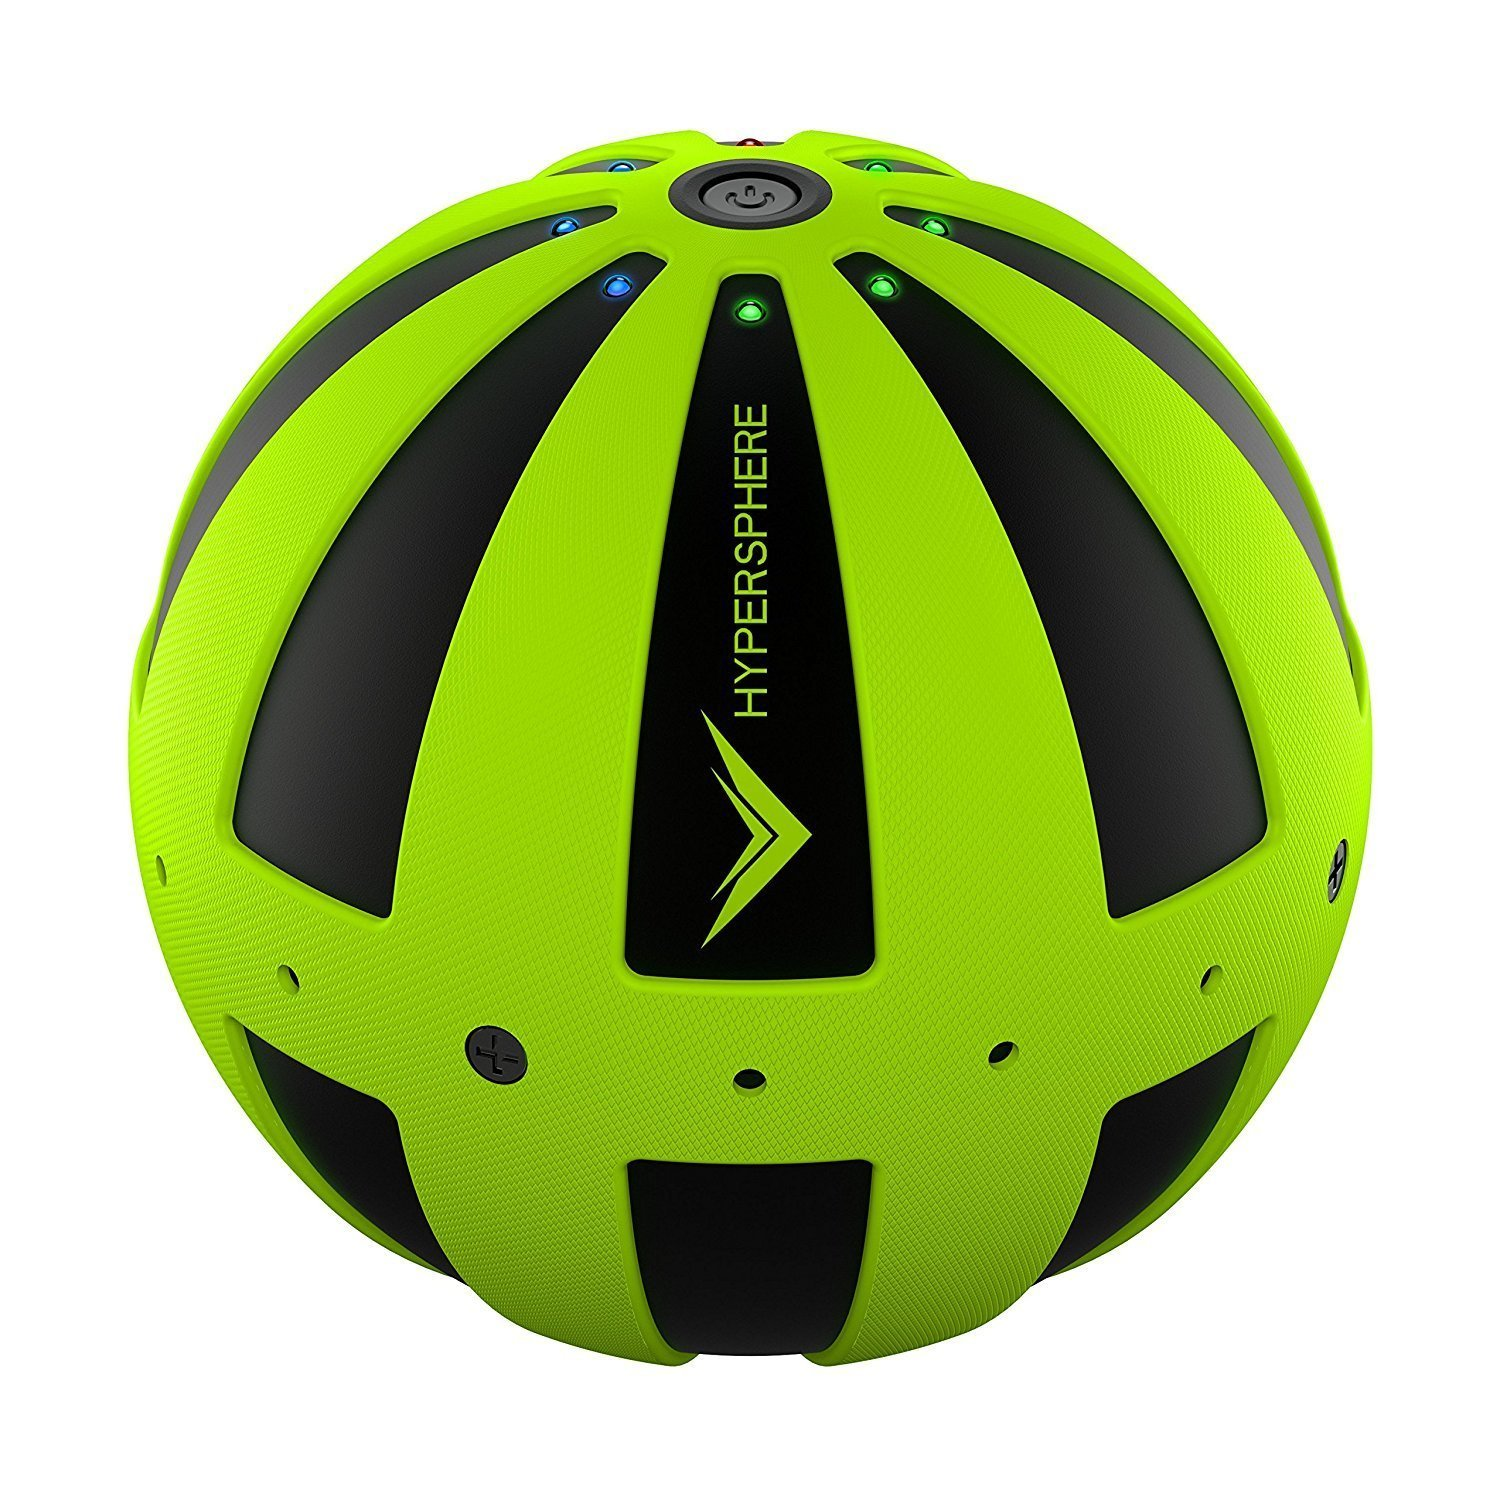 Hyperice Hypersphere Vibrating Therapy Ball (並行輸入品) B07FGD2V22 Green One Size